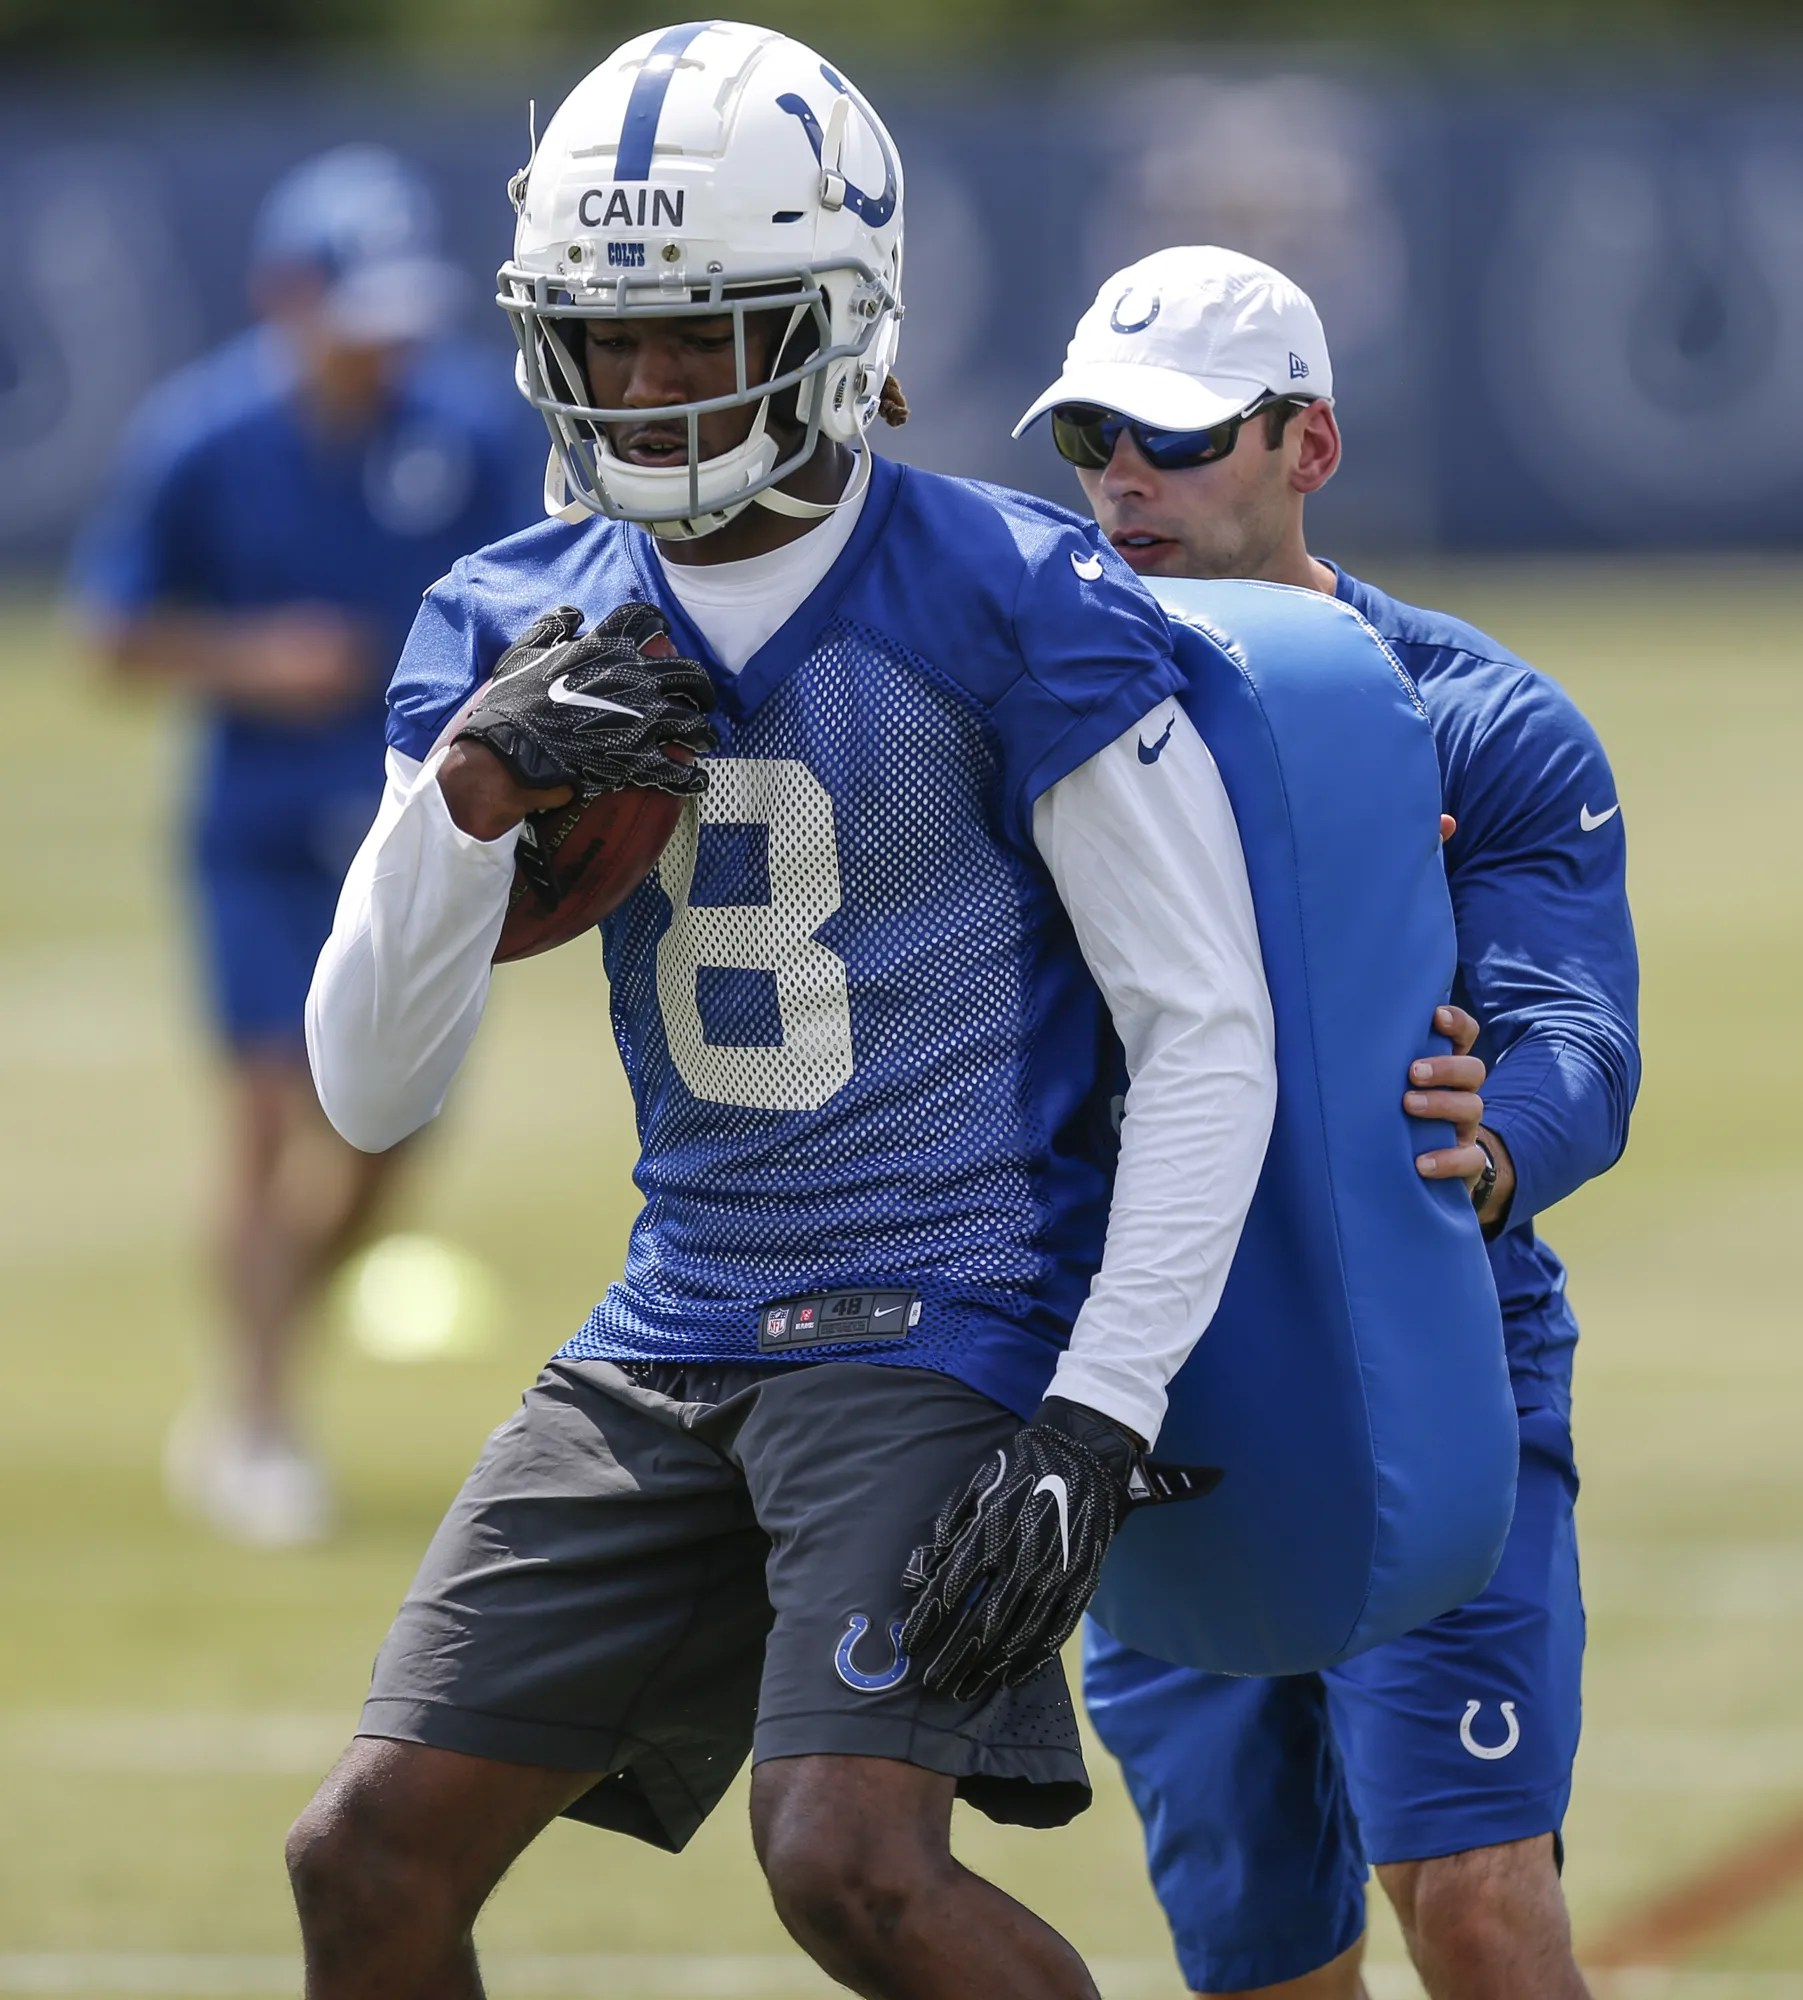 also indianapolis colts rookies skai moore deon cain impressing in otas rh indystar